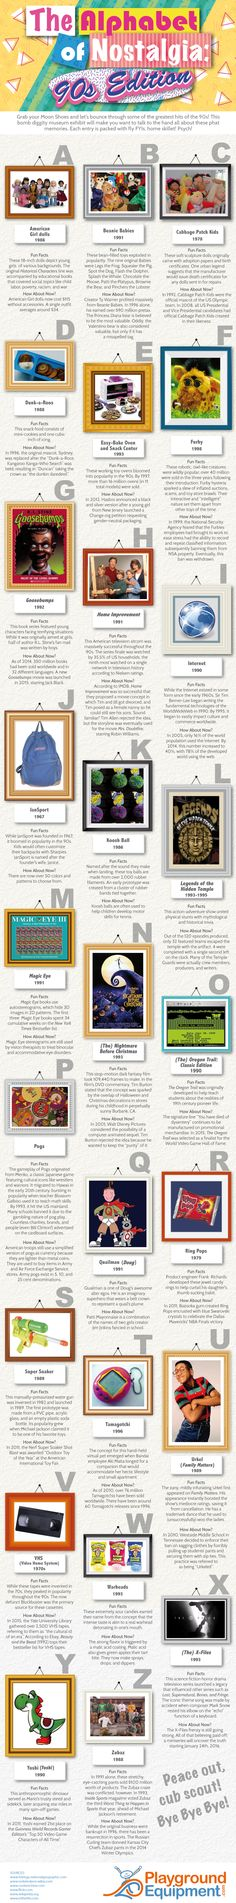 The Alphabet of Nostalgia: 90s Edition #infographic #Parenting #History